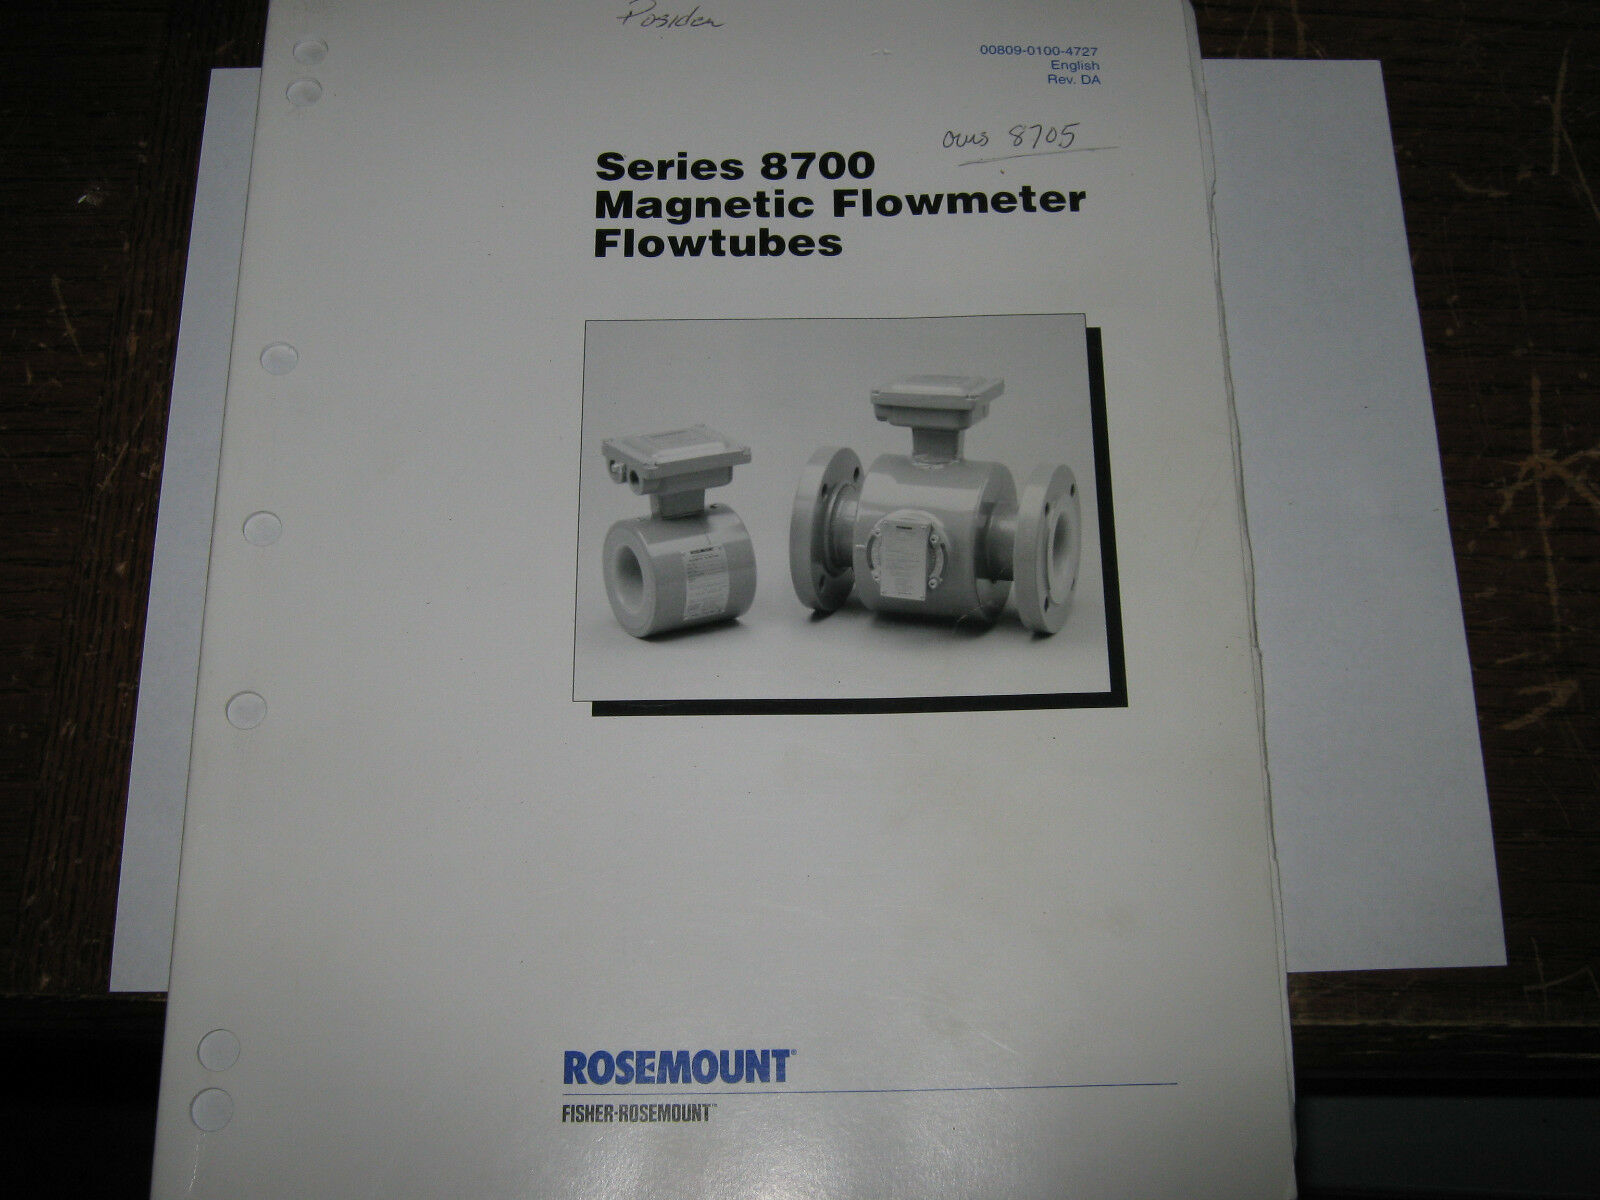 pinkmount 00809-0100-4727 Series 8700 Magnetic Flowmeter Flowtubes Manual, Used